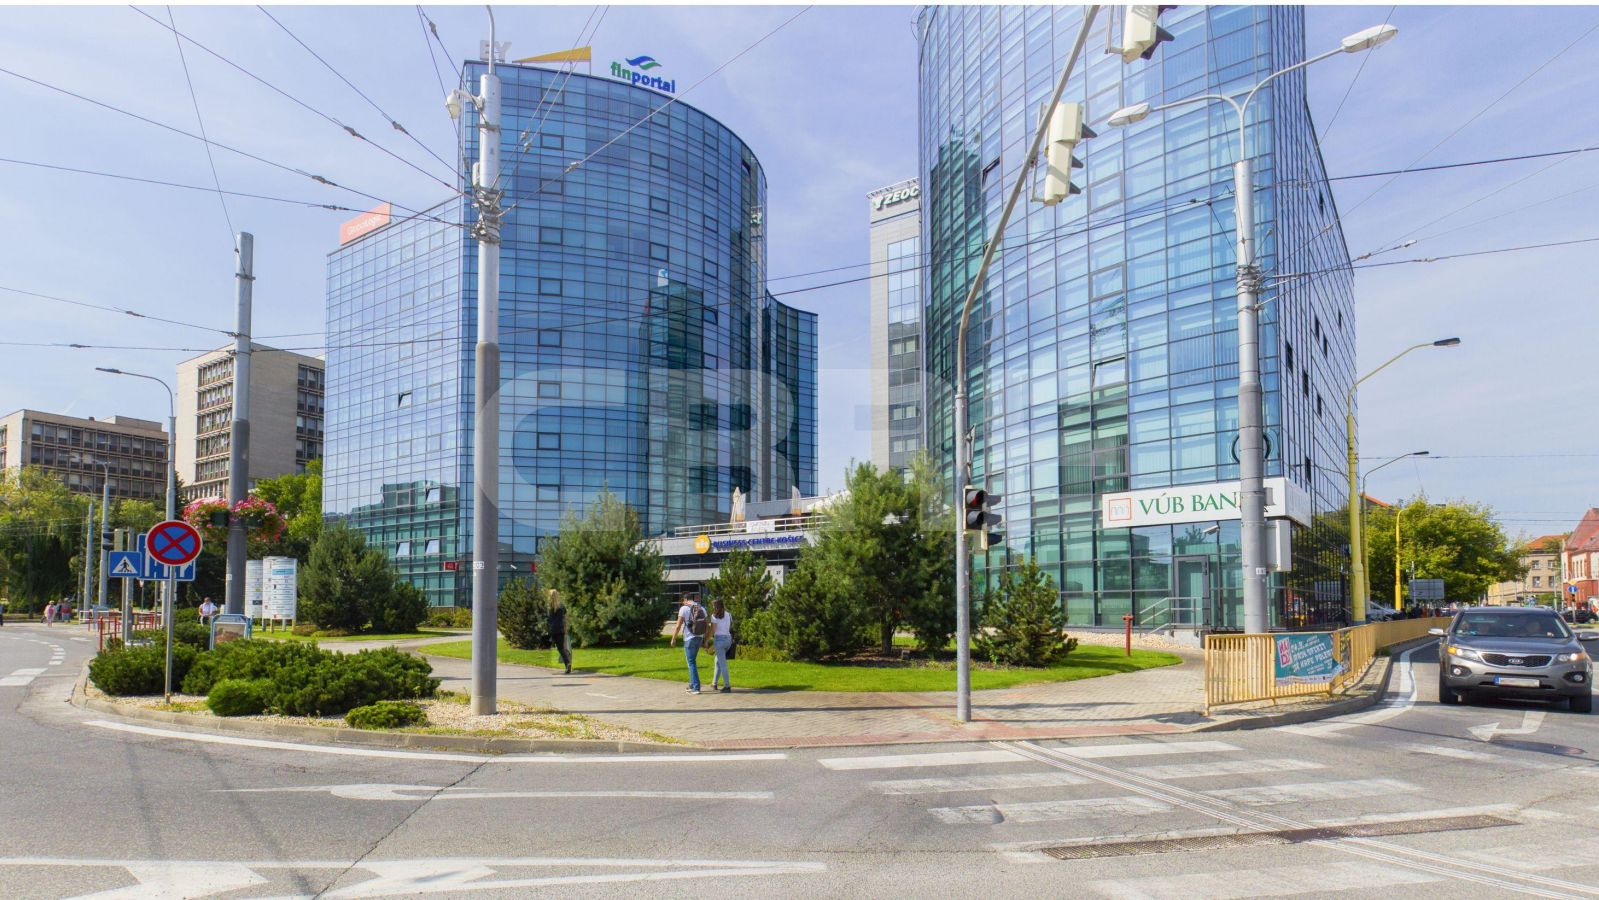 Business Center Košice II, Košice - Staré Mesto | Offices for rent by CBRE | 2